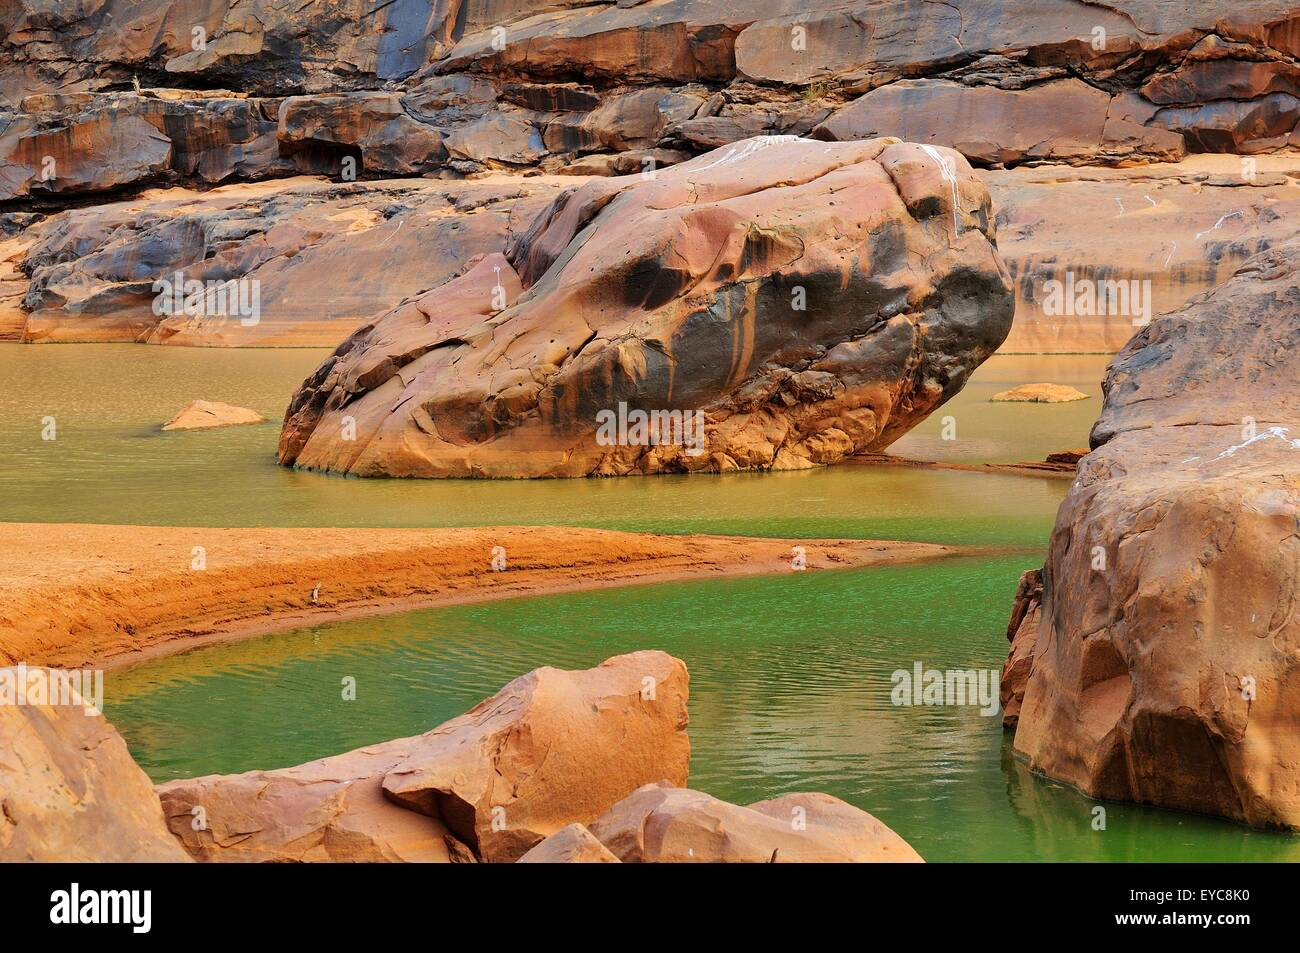 River valley with year-round water supplies, Guelta of Matmata, Tagant Region, Mauritania - Stock Image